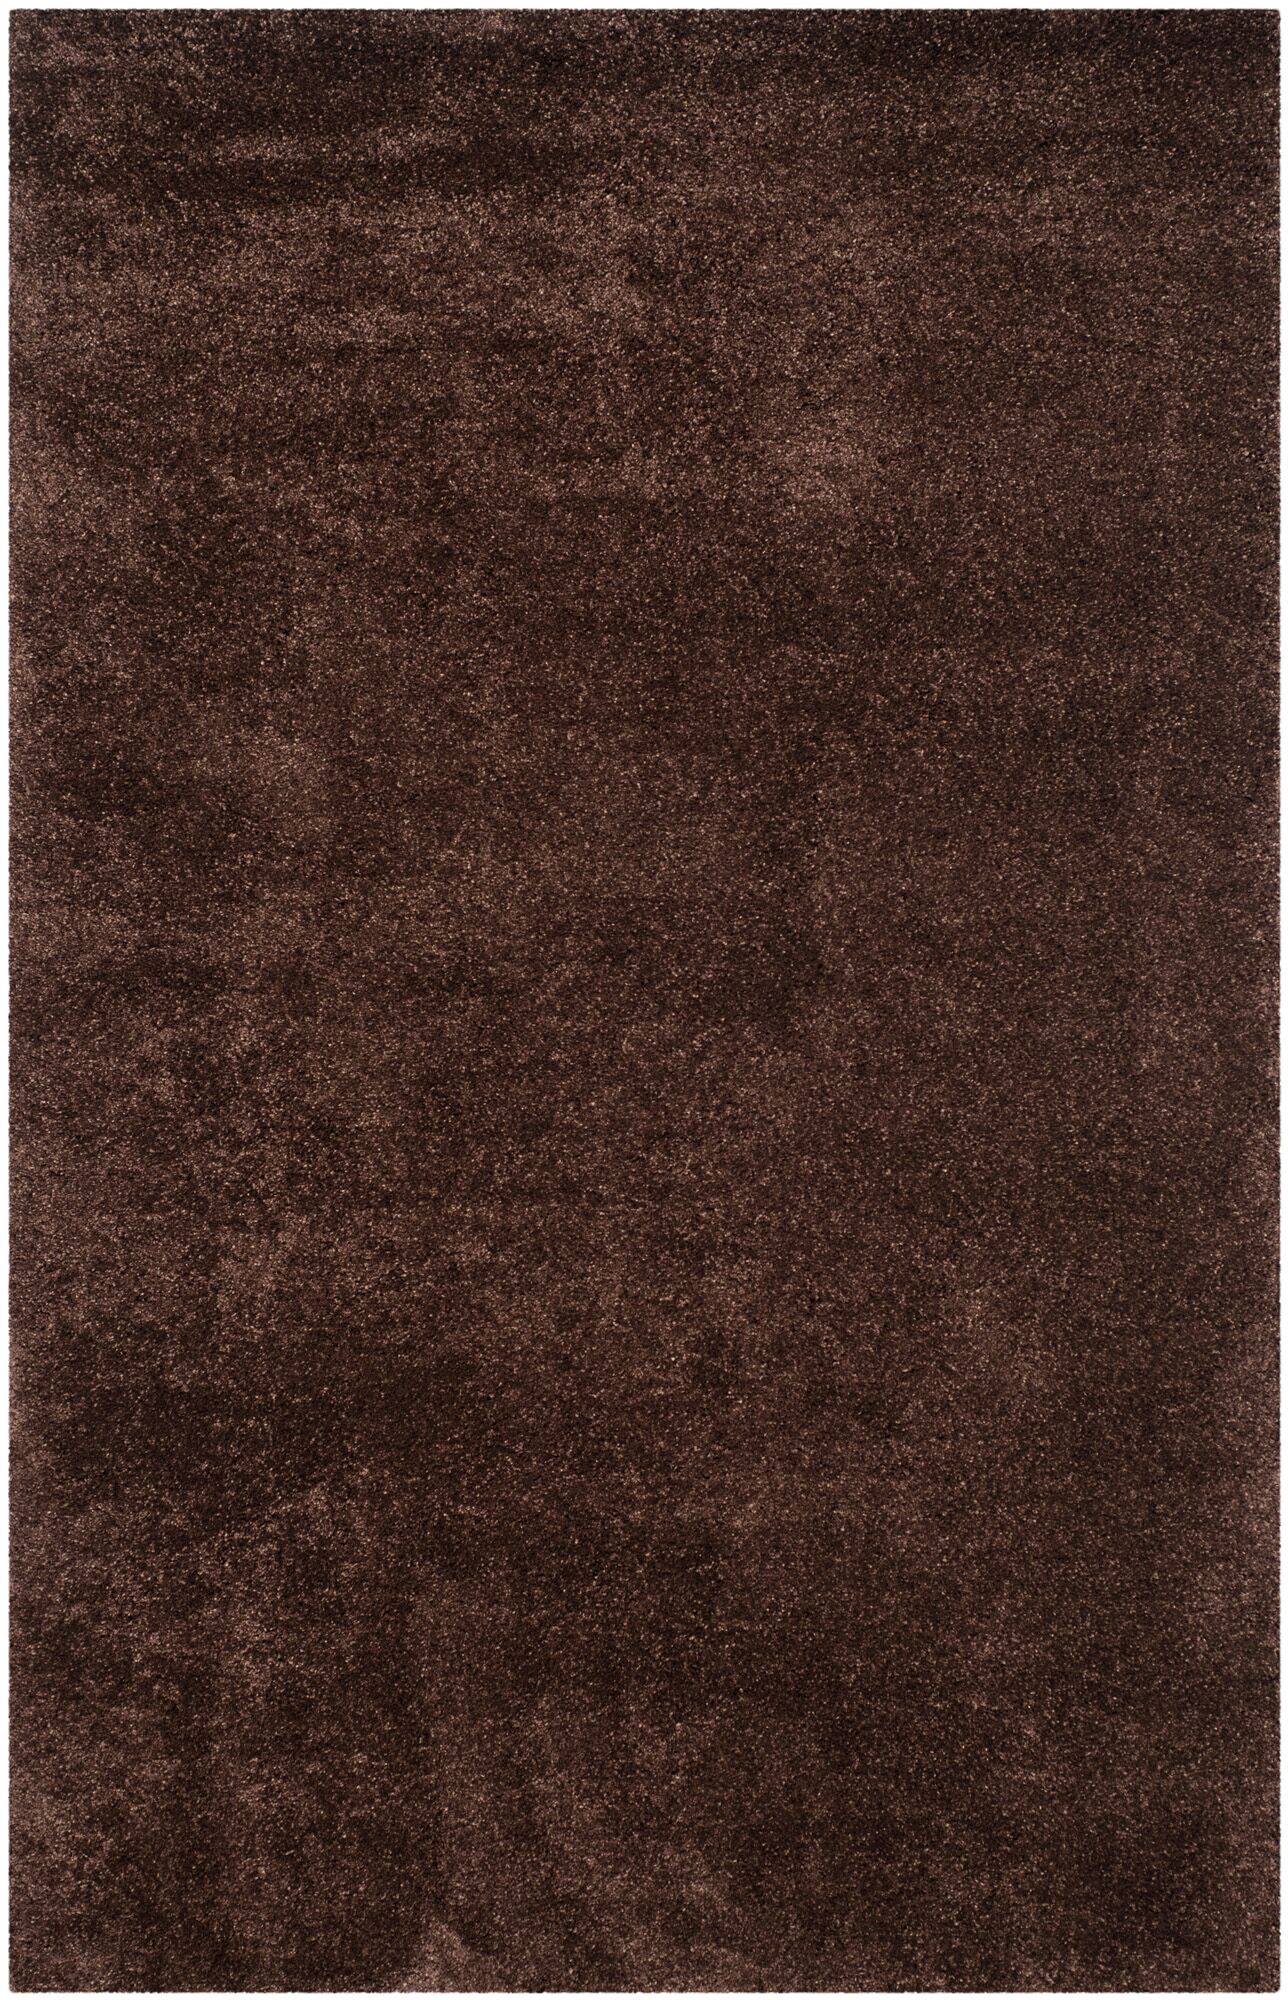 Starr Hill Brown Rug Rug Size: Rectangle 6' x 9'